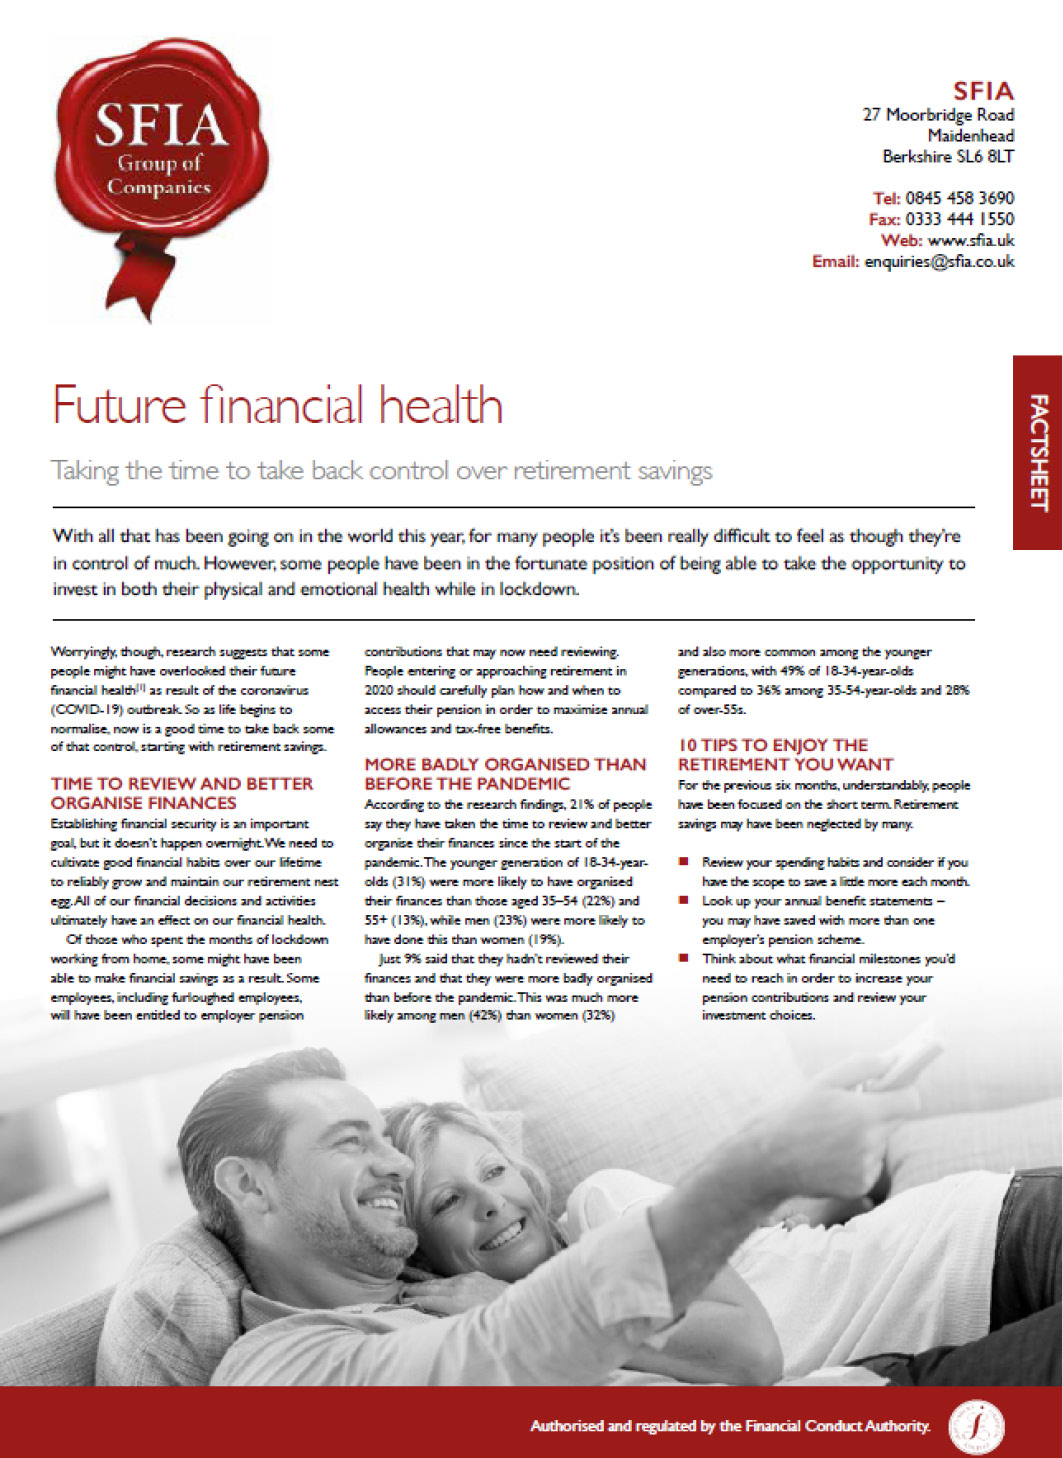 future financial health image